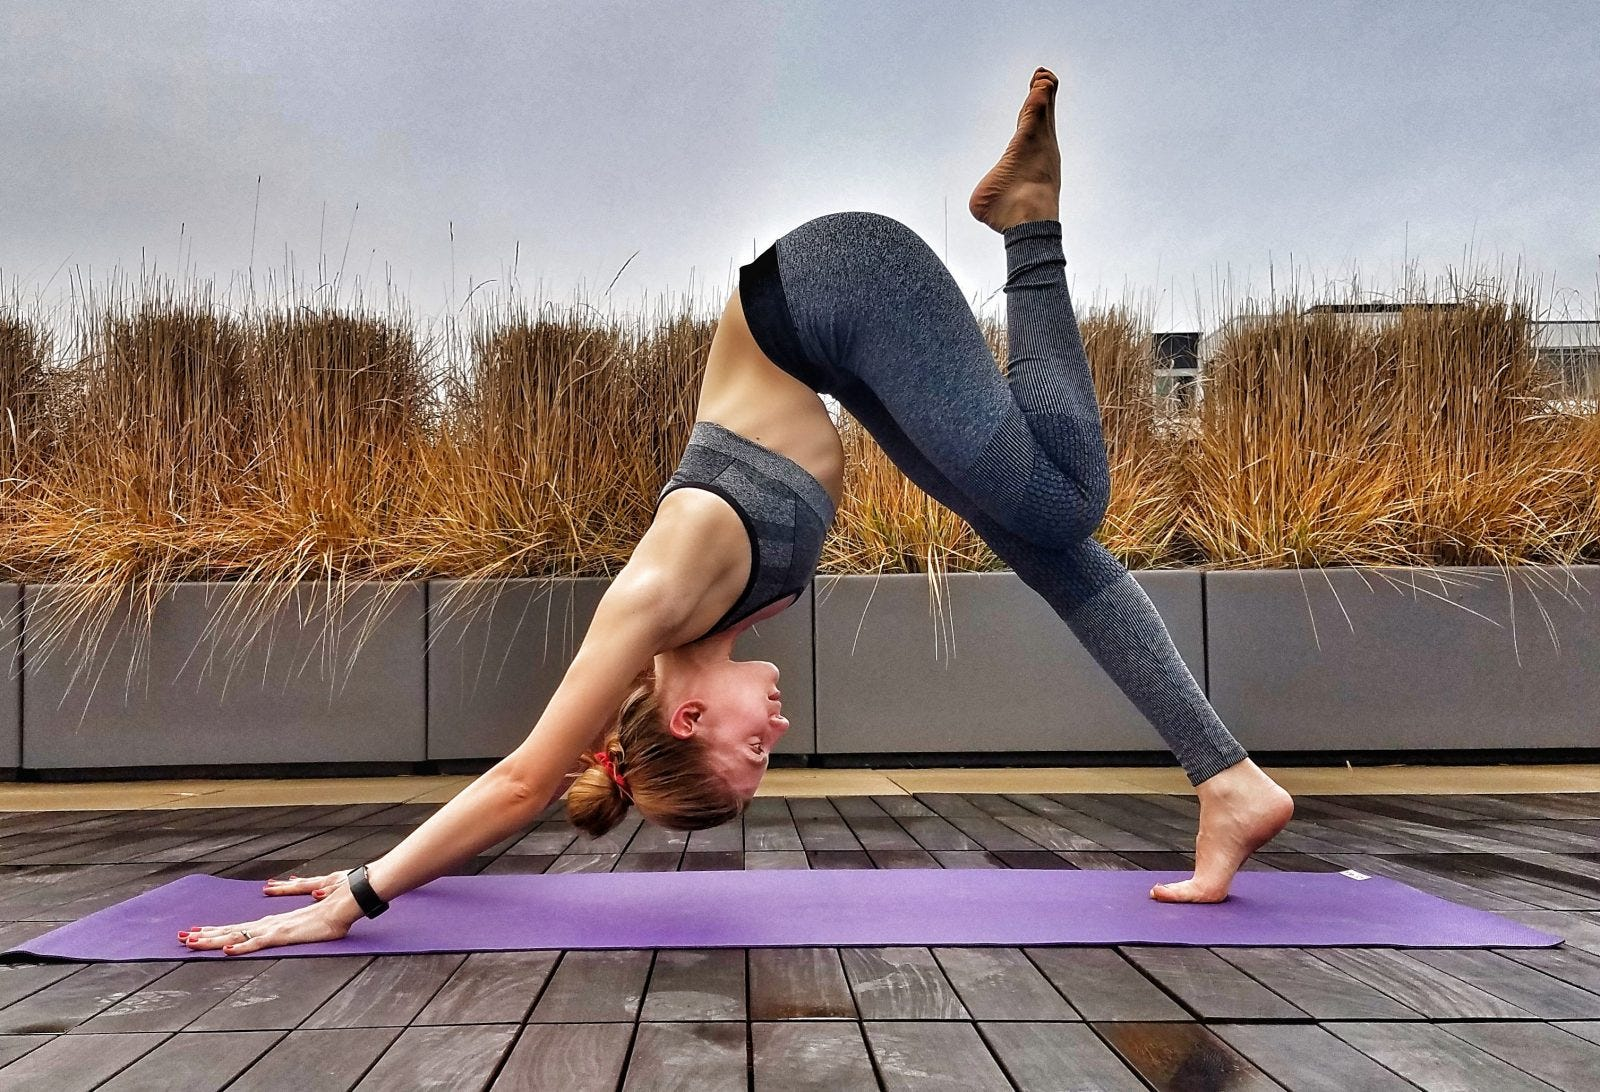 A woman doing a downward-facing dog yoga pose outdoors on a purple mat.